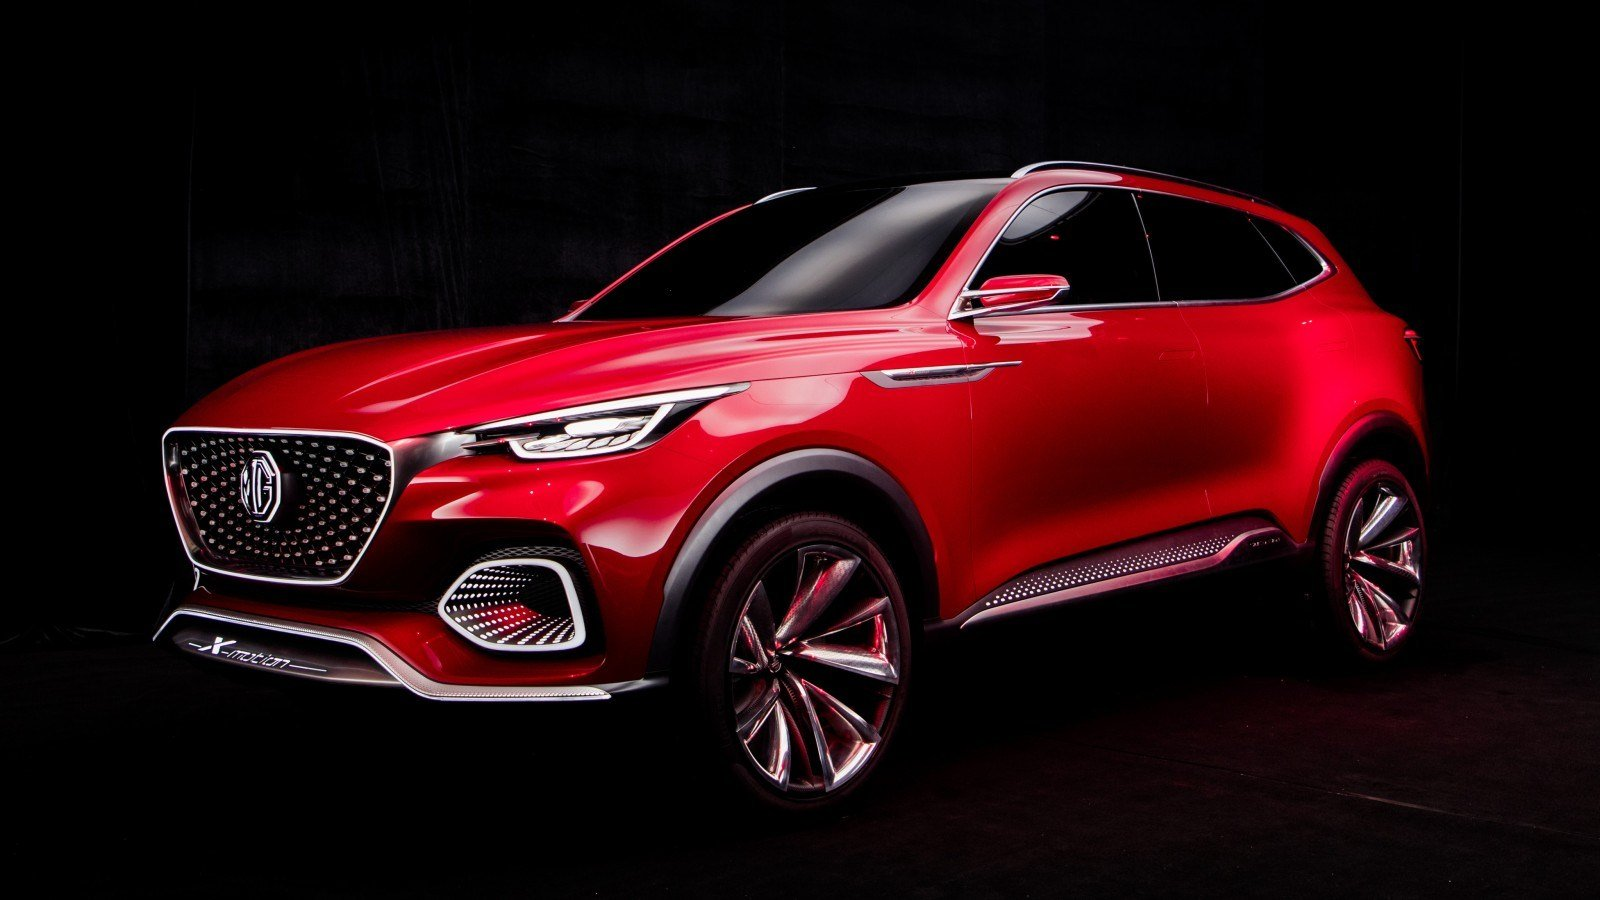 Latest 2018 Mg X Motion Suv Concept 4K Wallpaper Hd Car Free Download